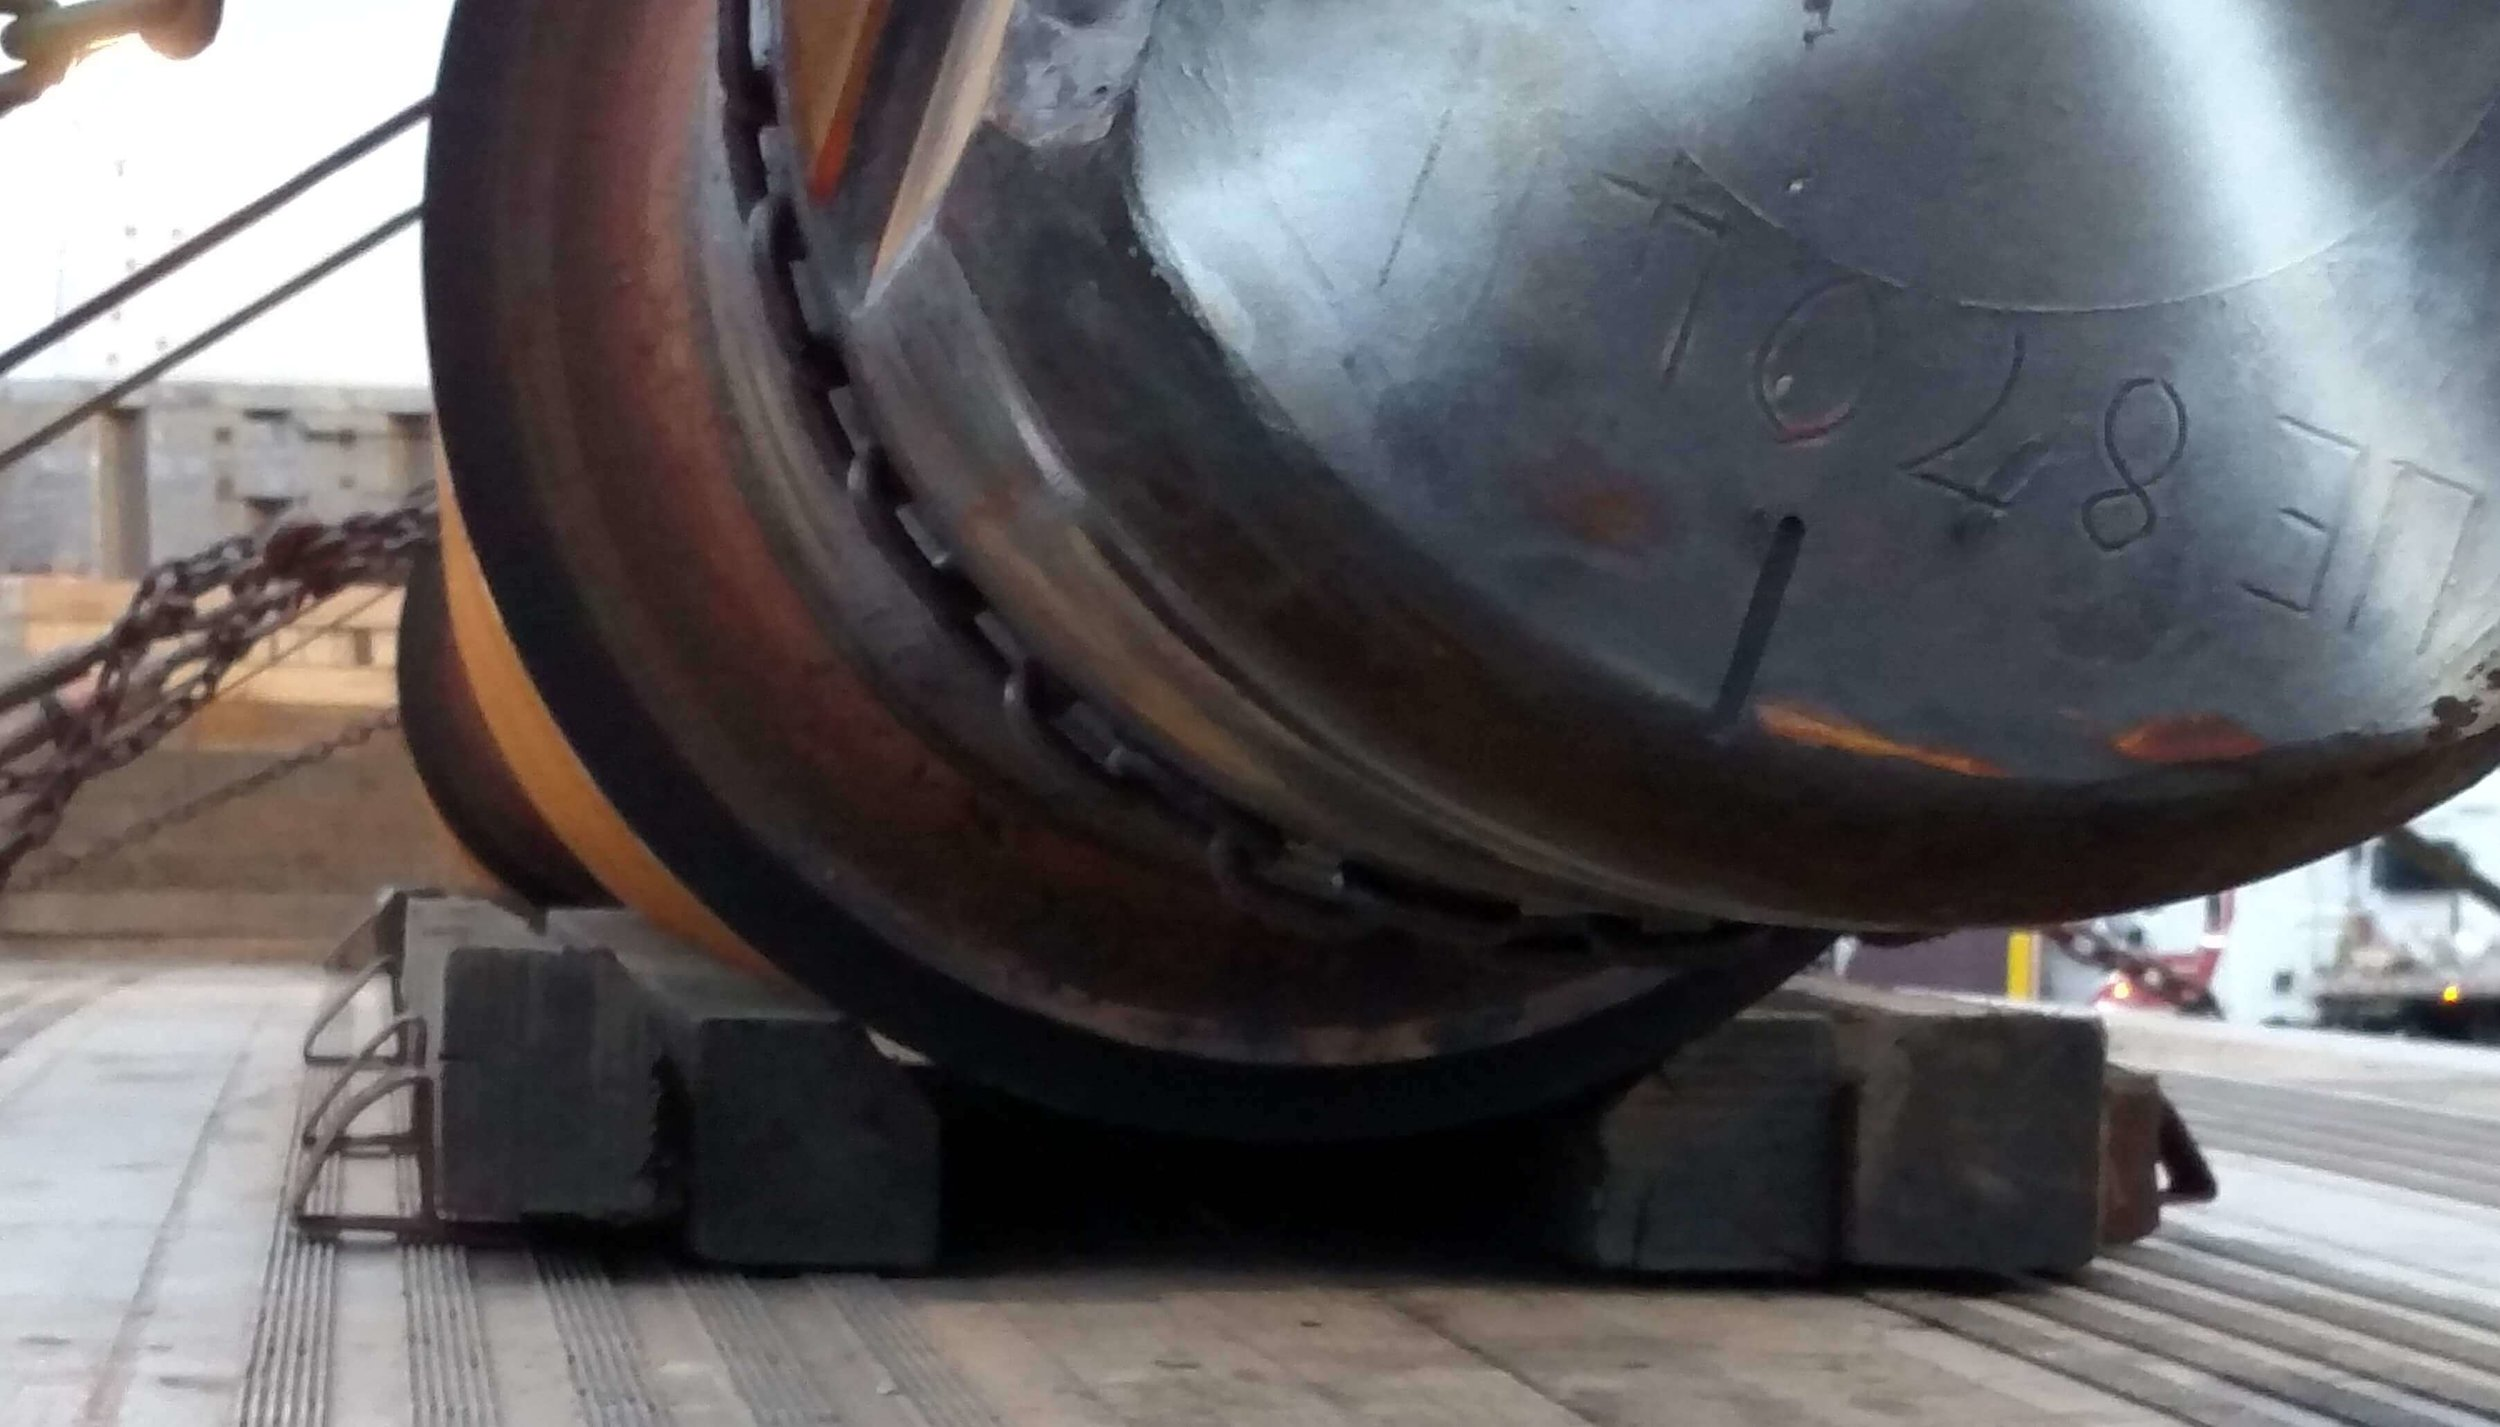 H-2:  When using coil racks, use spacer blocks to keep the roll off of the floor of the trailer.